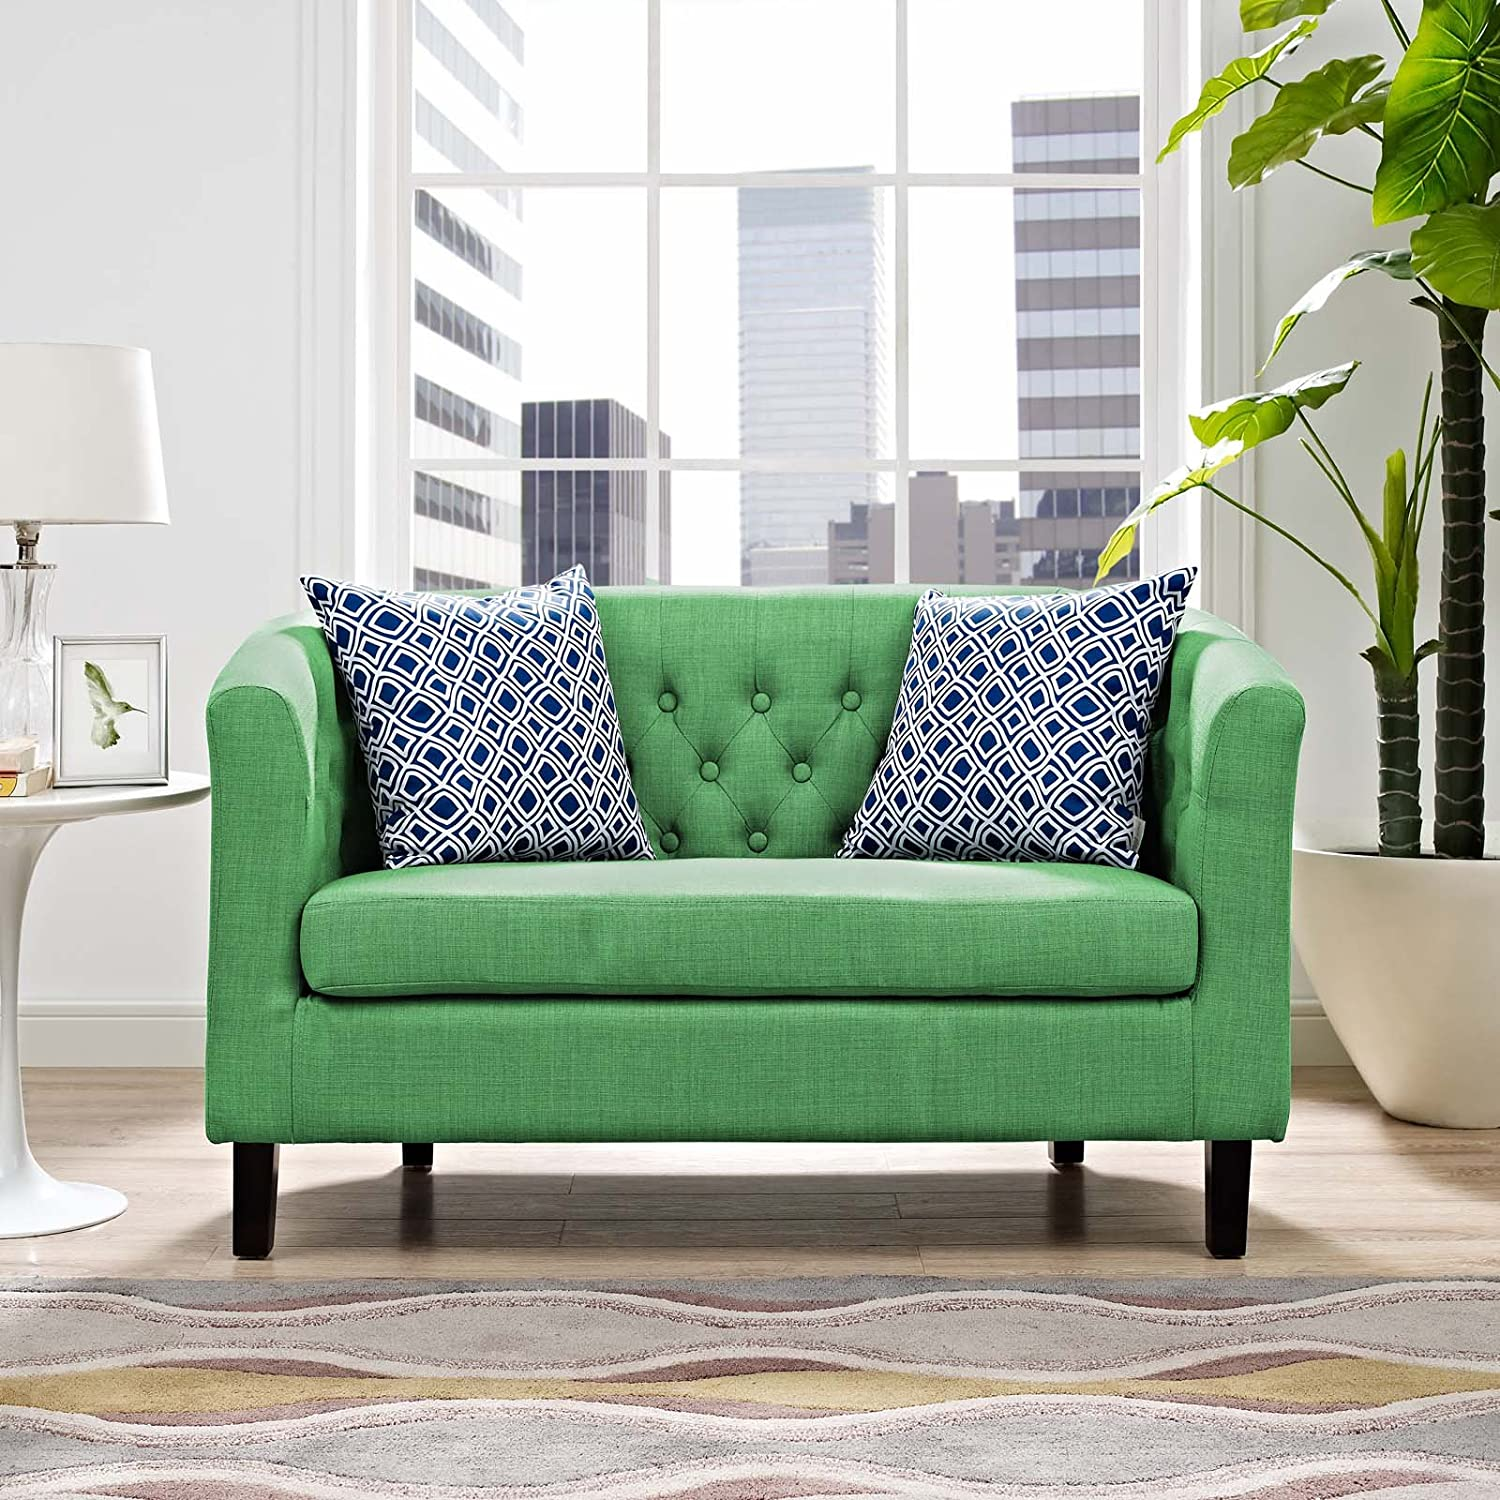 Modway Prospect Upholstered Fabric Contemporary Modern Accent Arm Chair in Teal